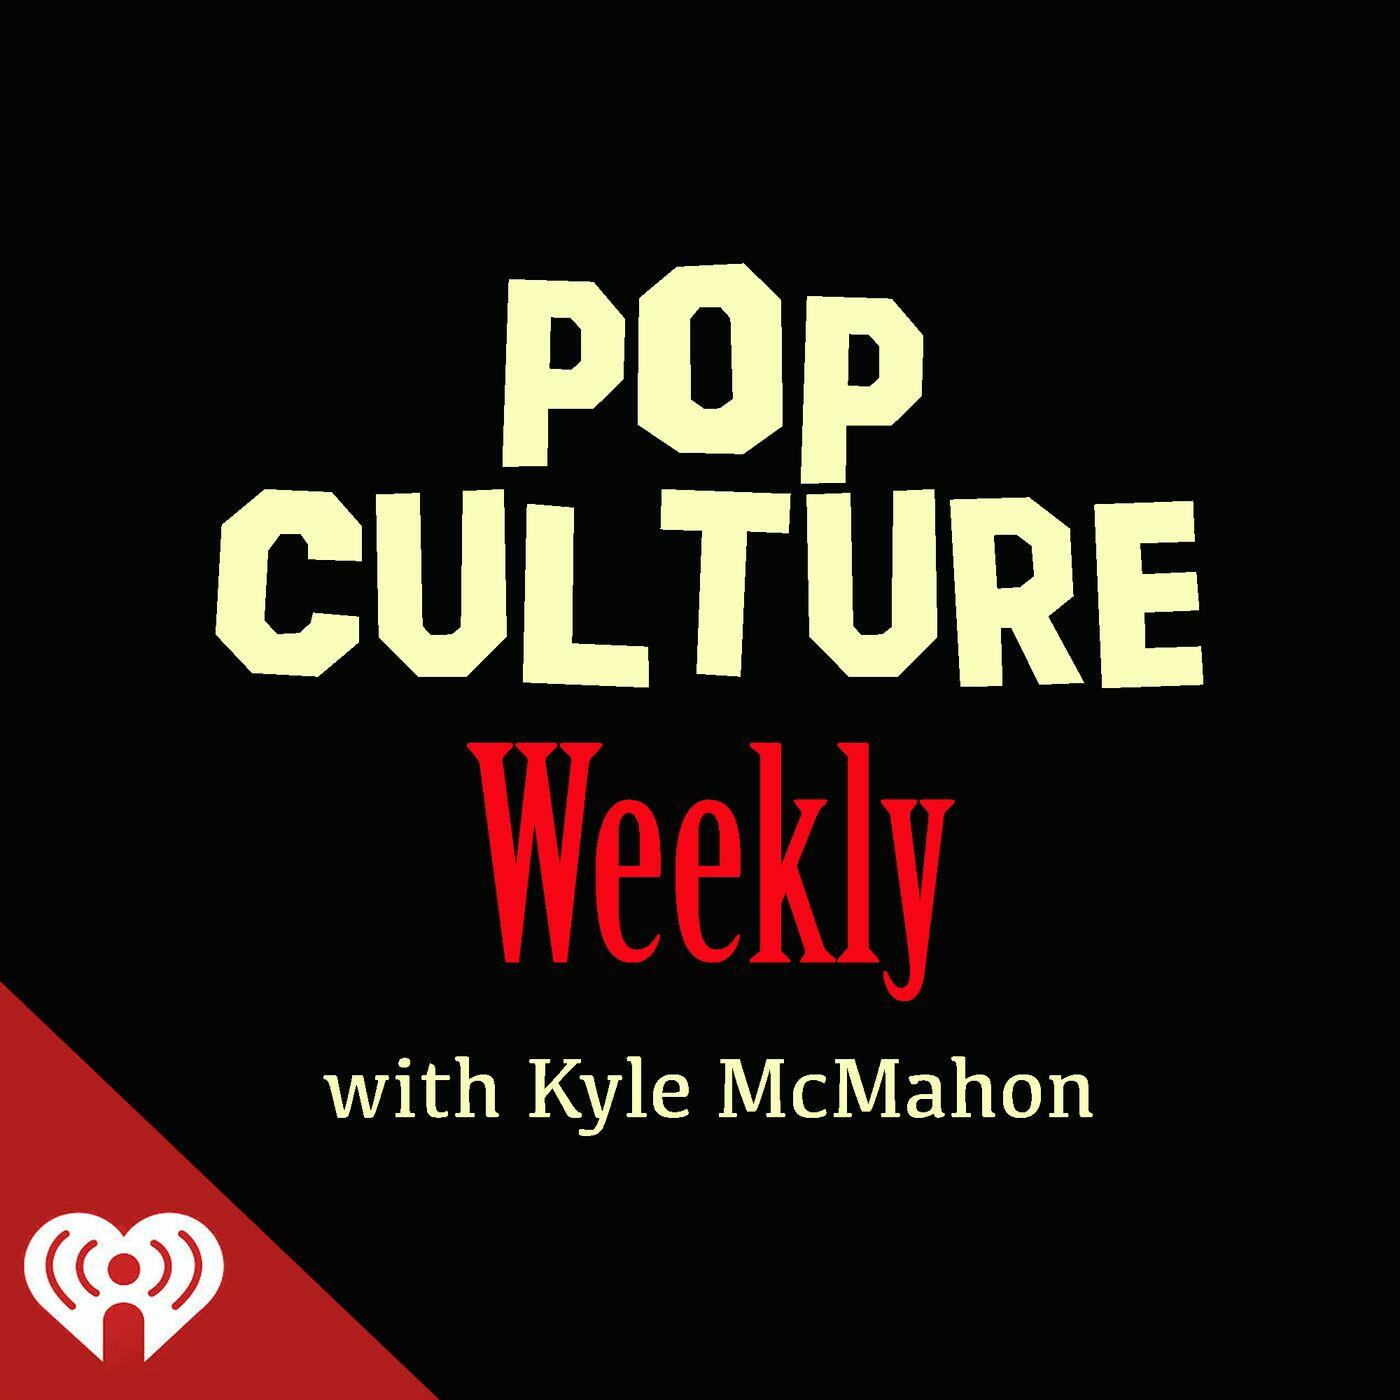 Pop Culture Weekly